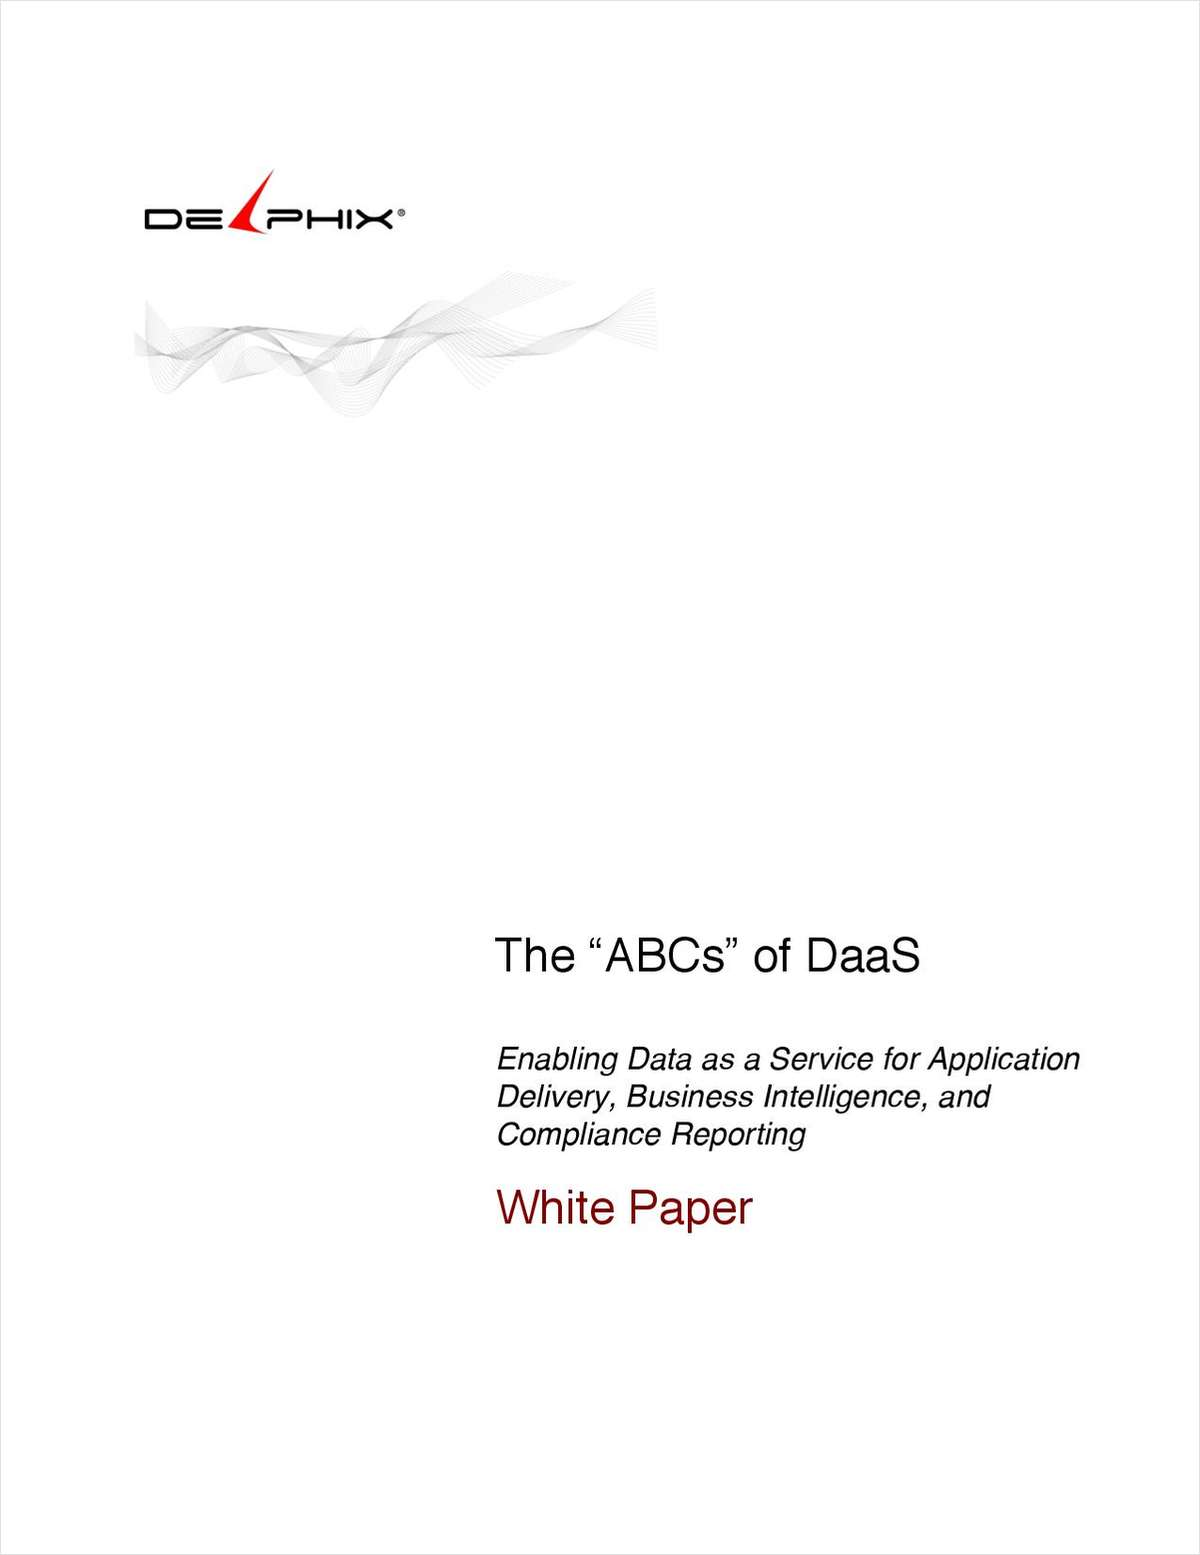 The 'ABCs' of DaaS